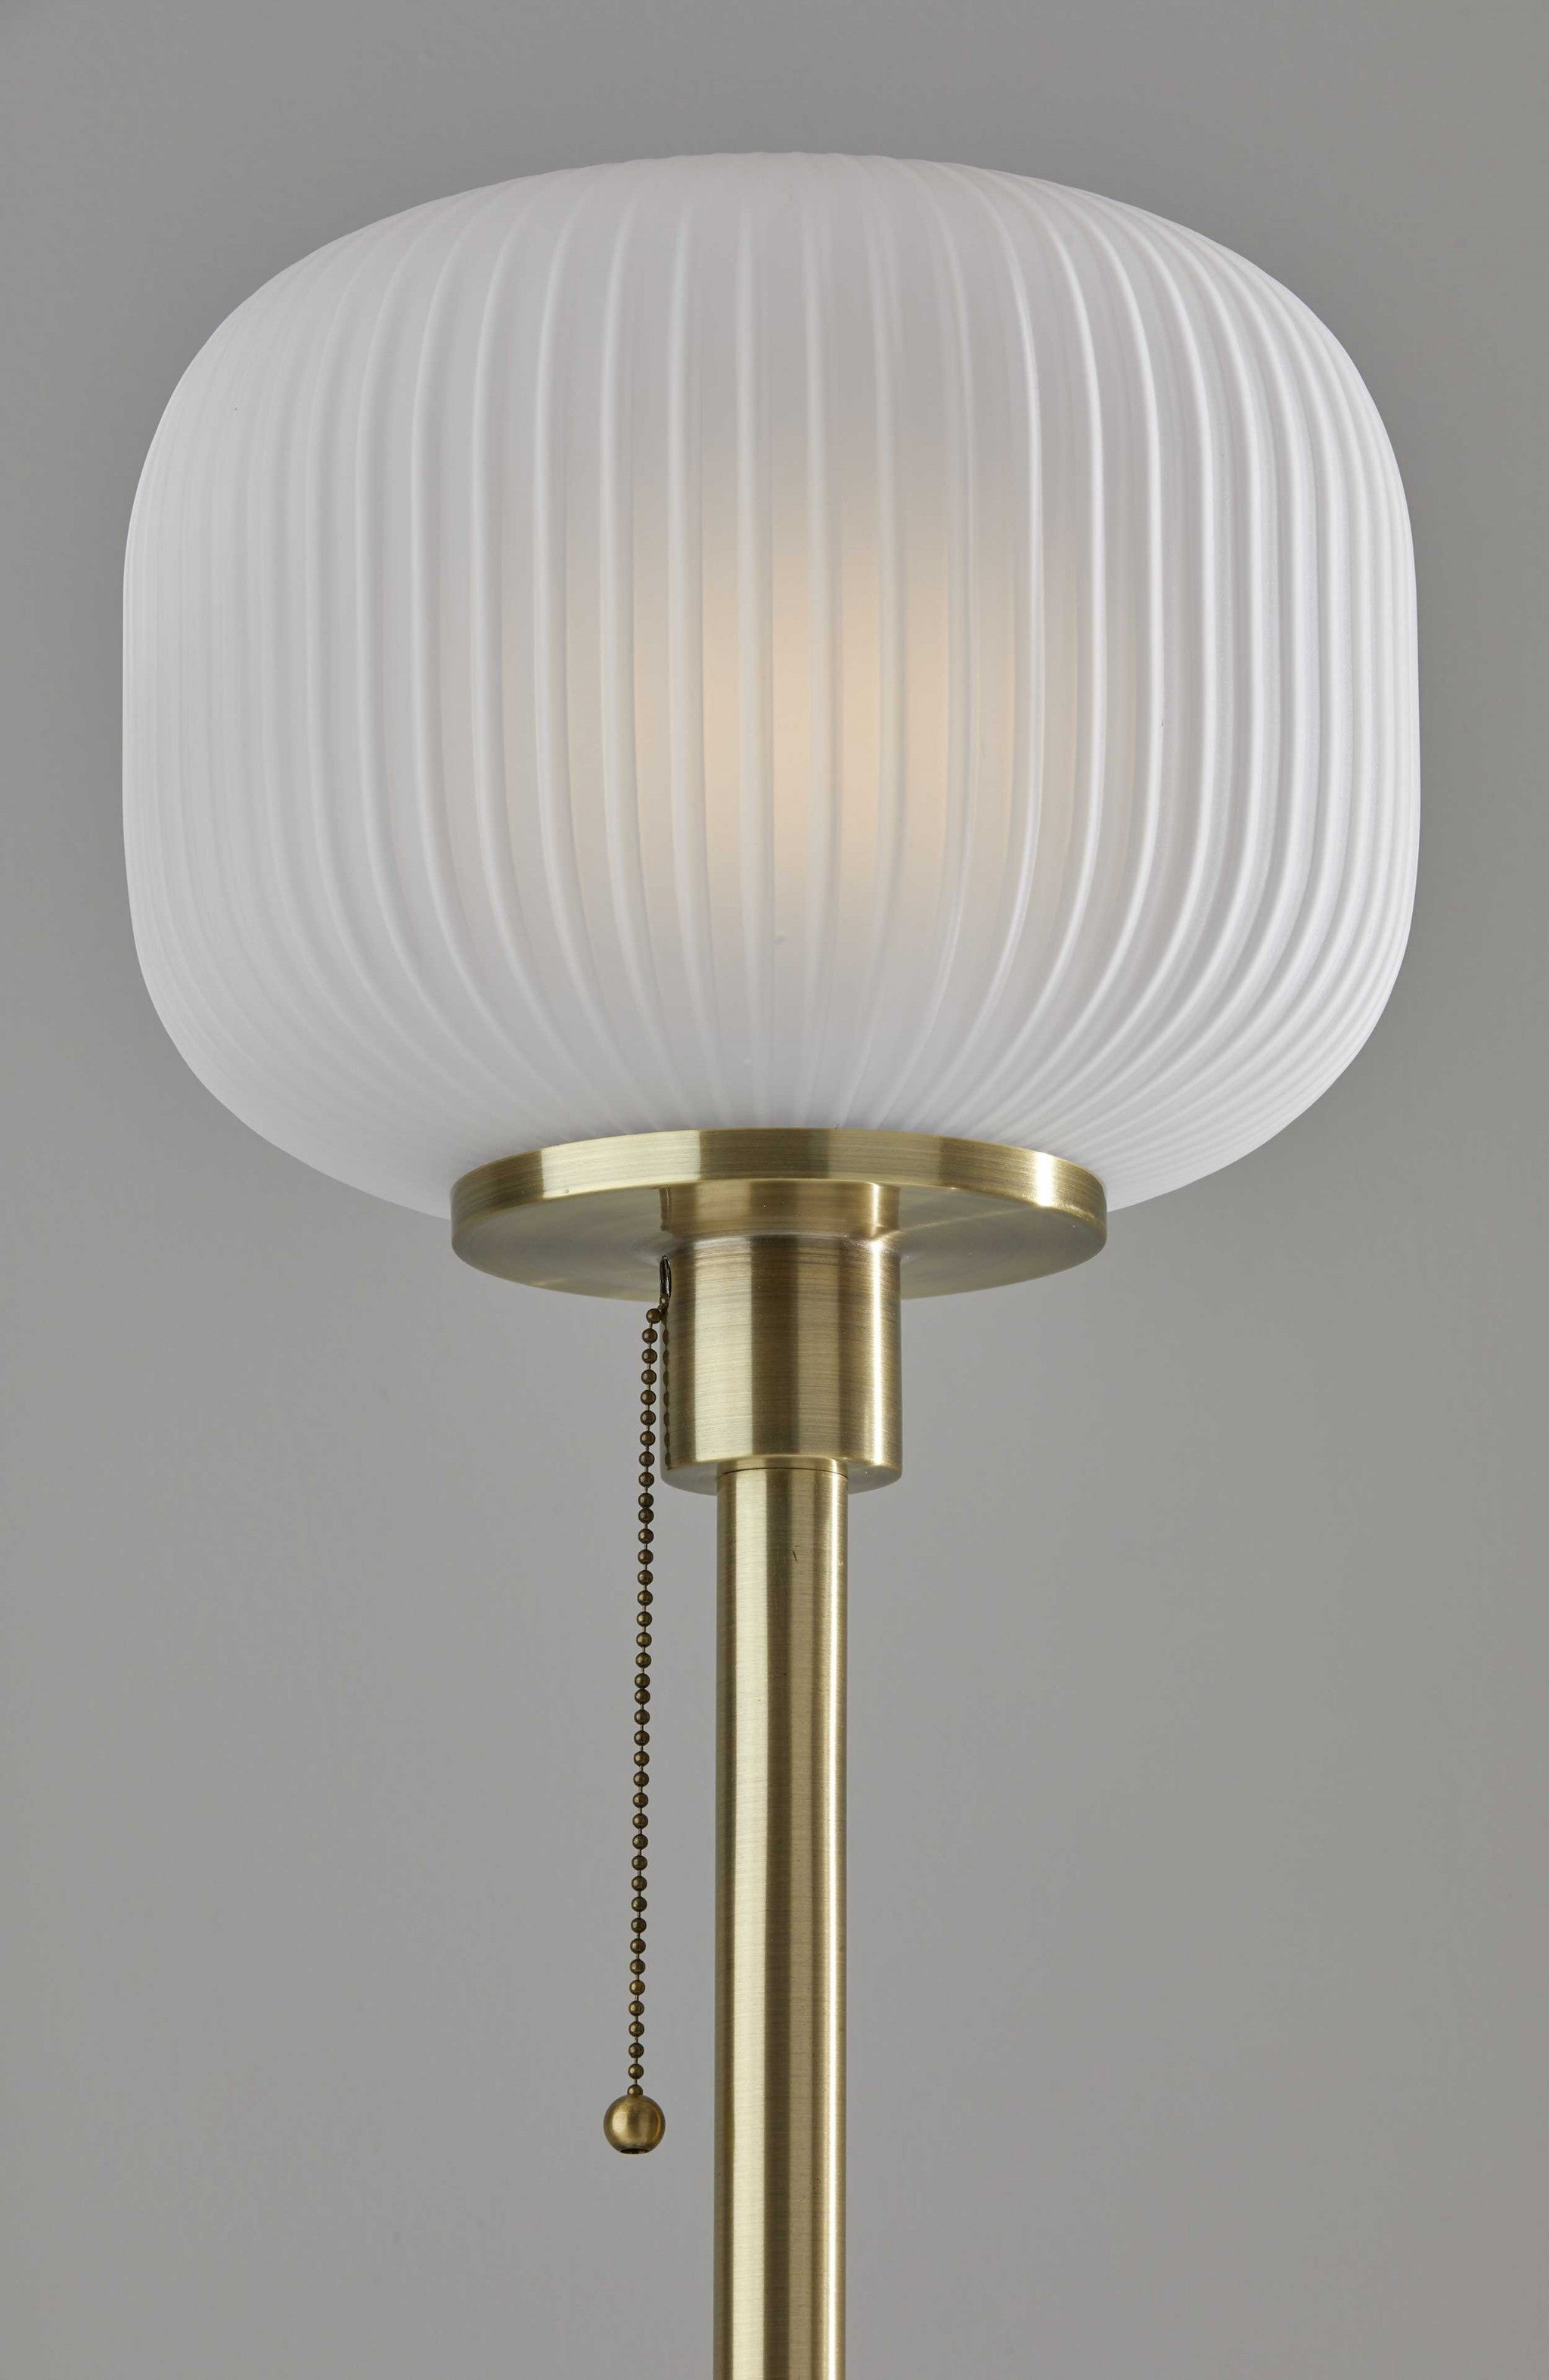 "10"" X 10"" X 65"" Antique Brass  Glass/Metal Floor Lamp"